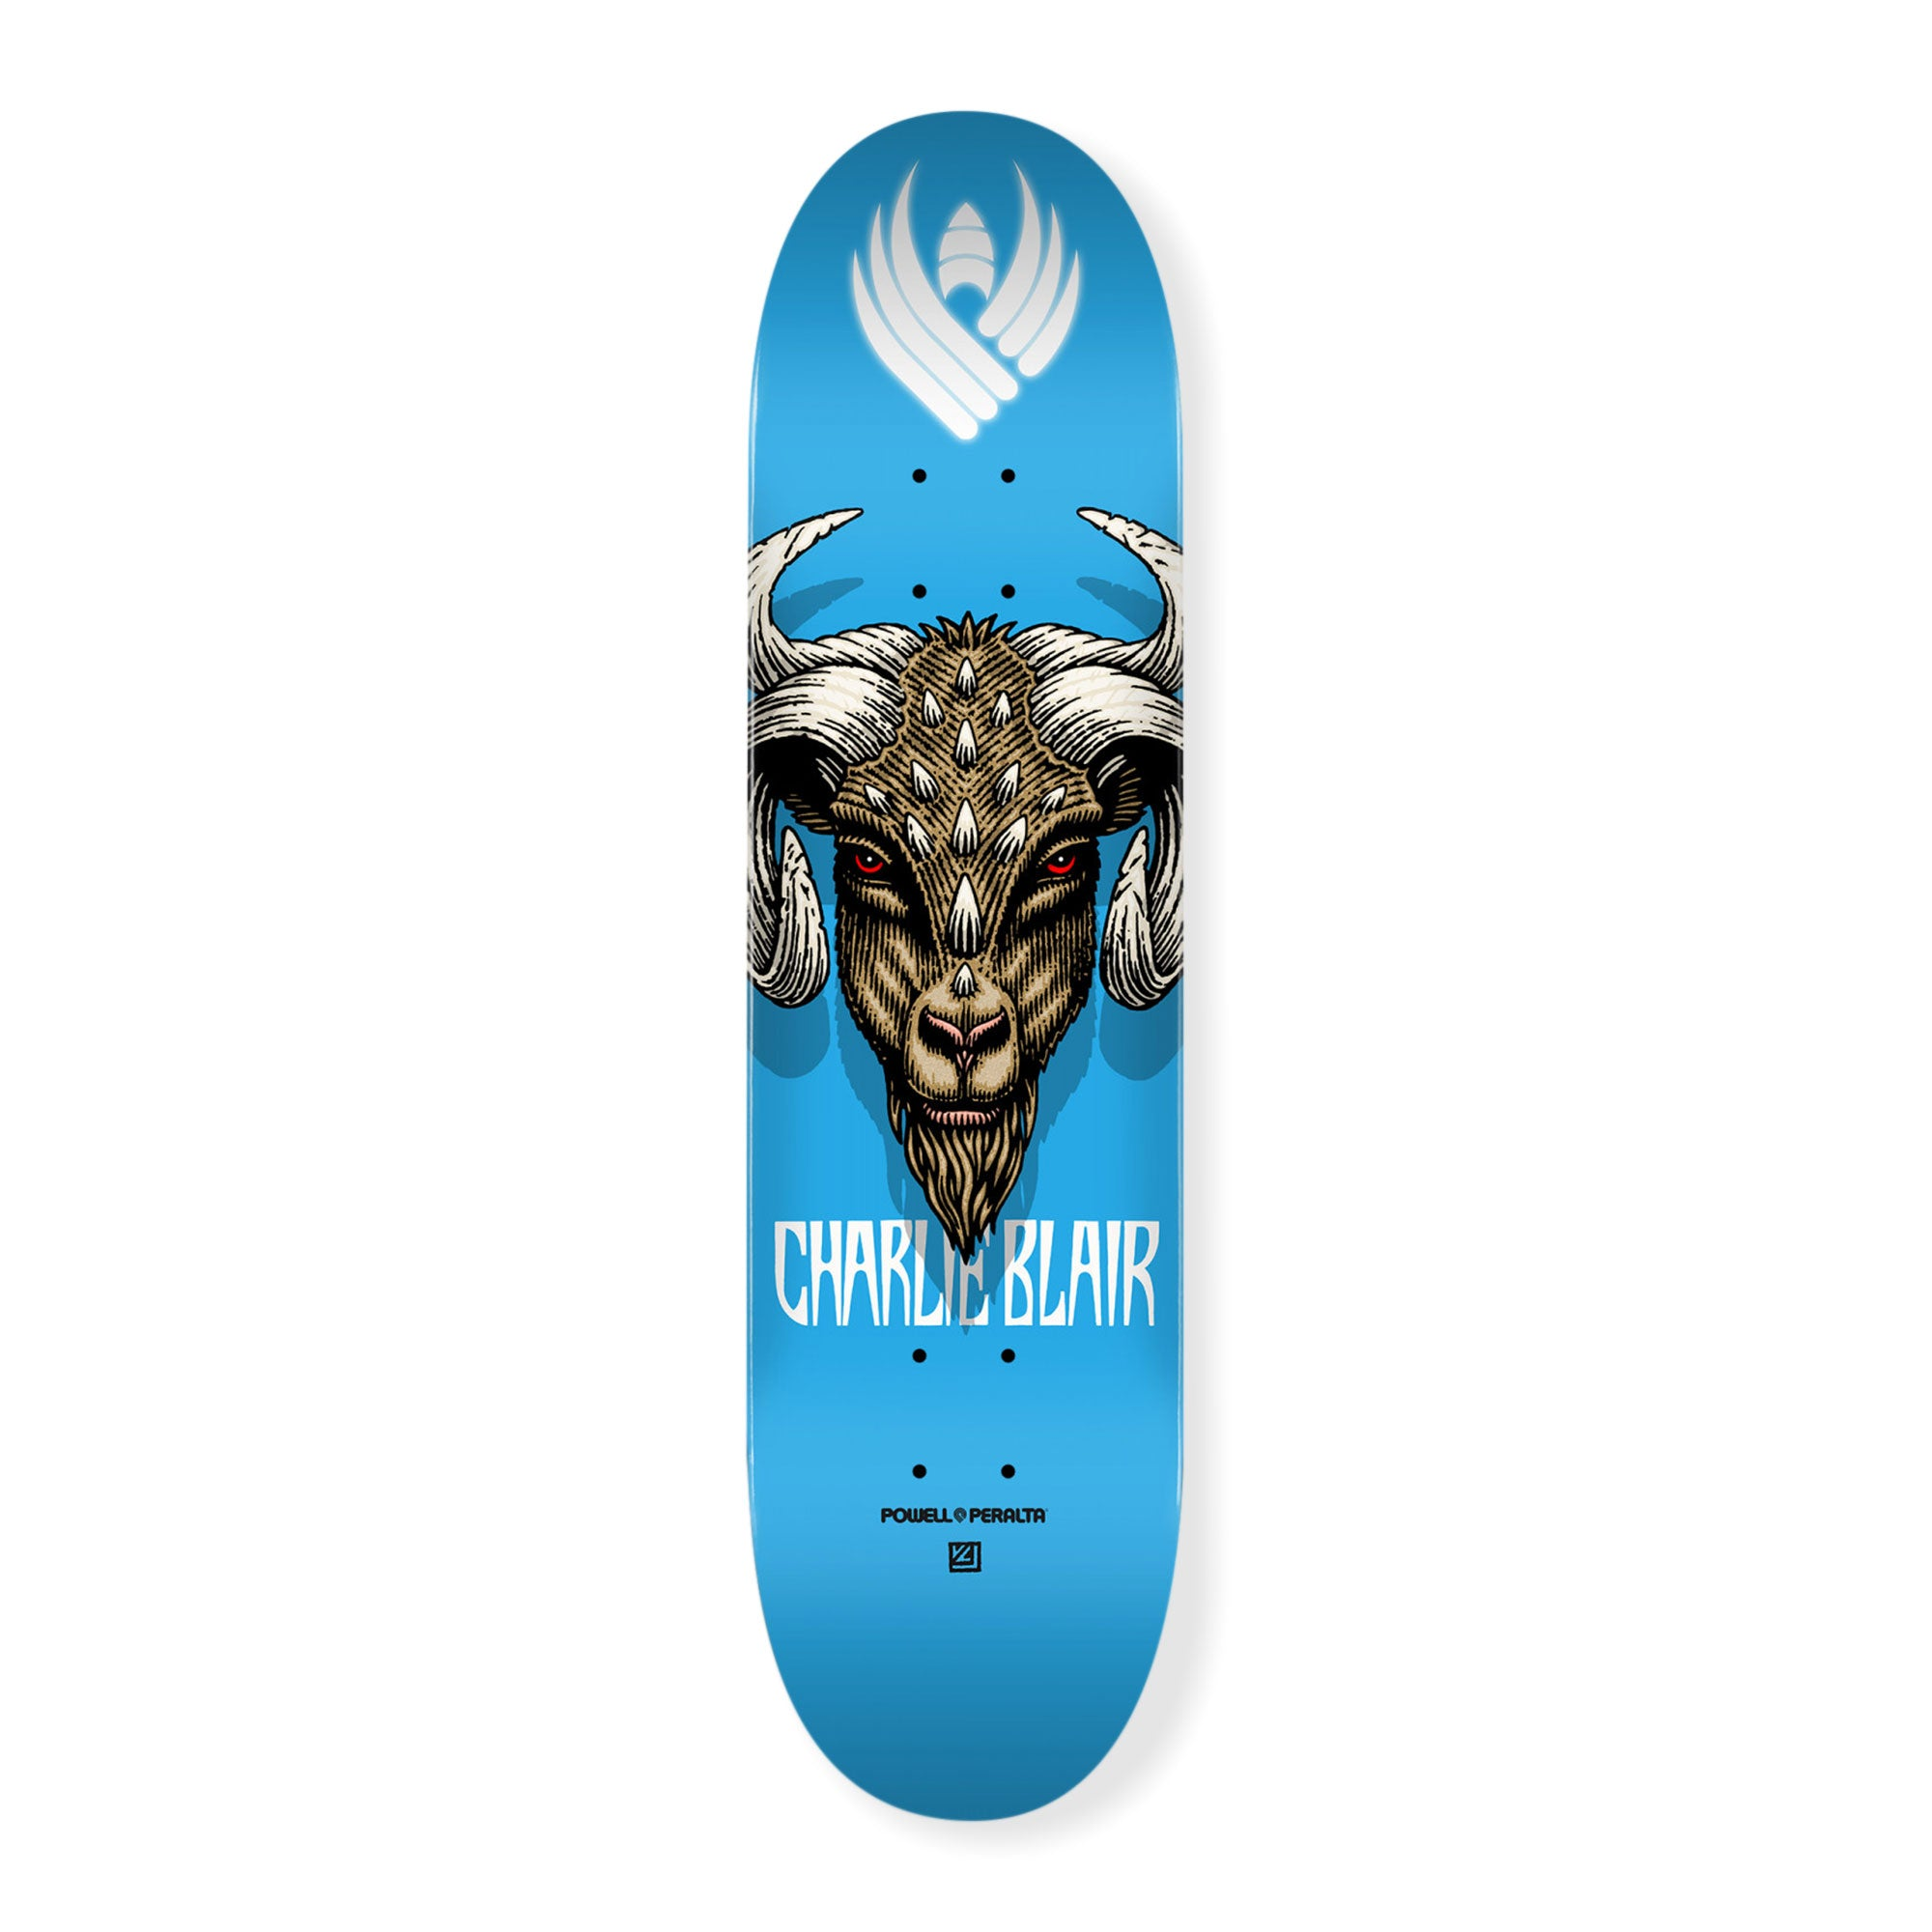 Powell Peralta Blair Goat Deck Product Photo #1